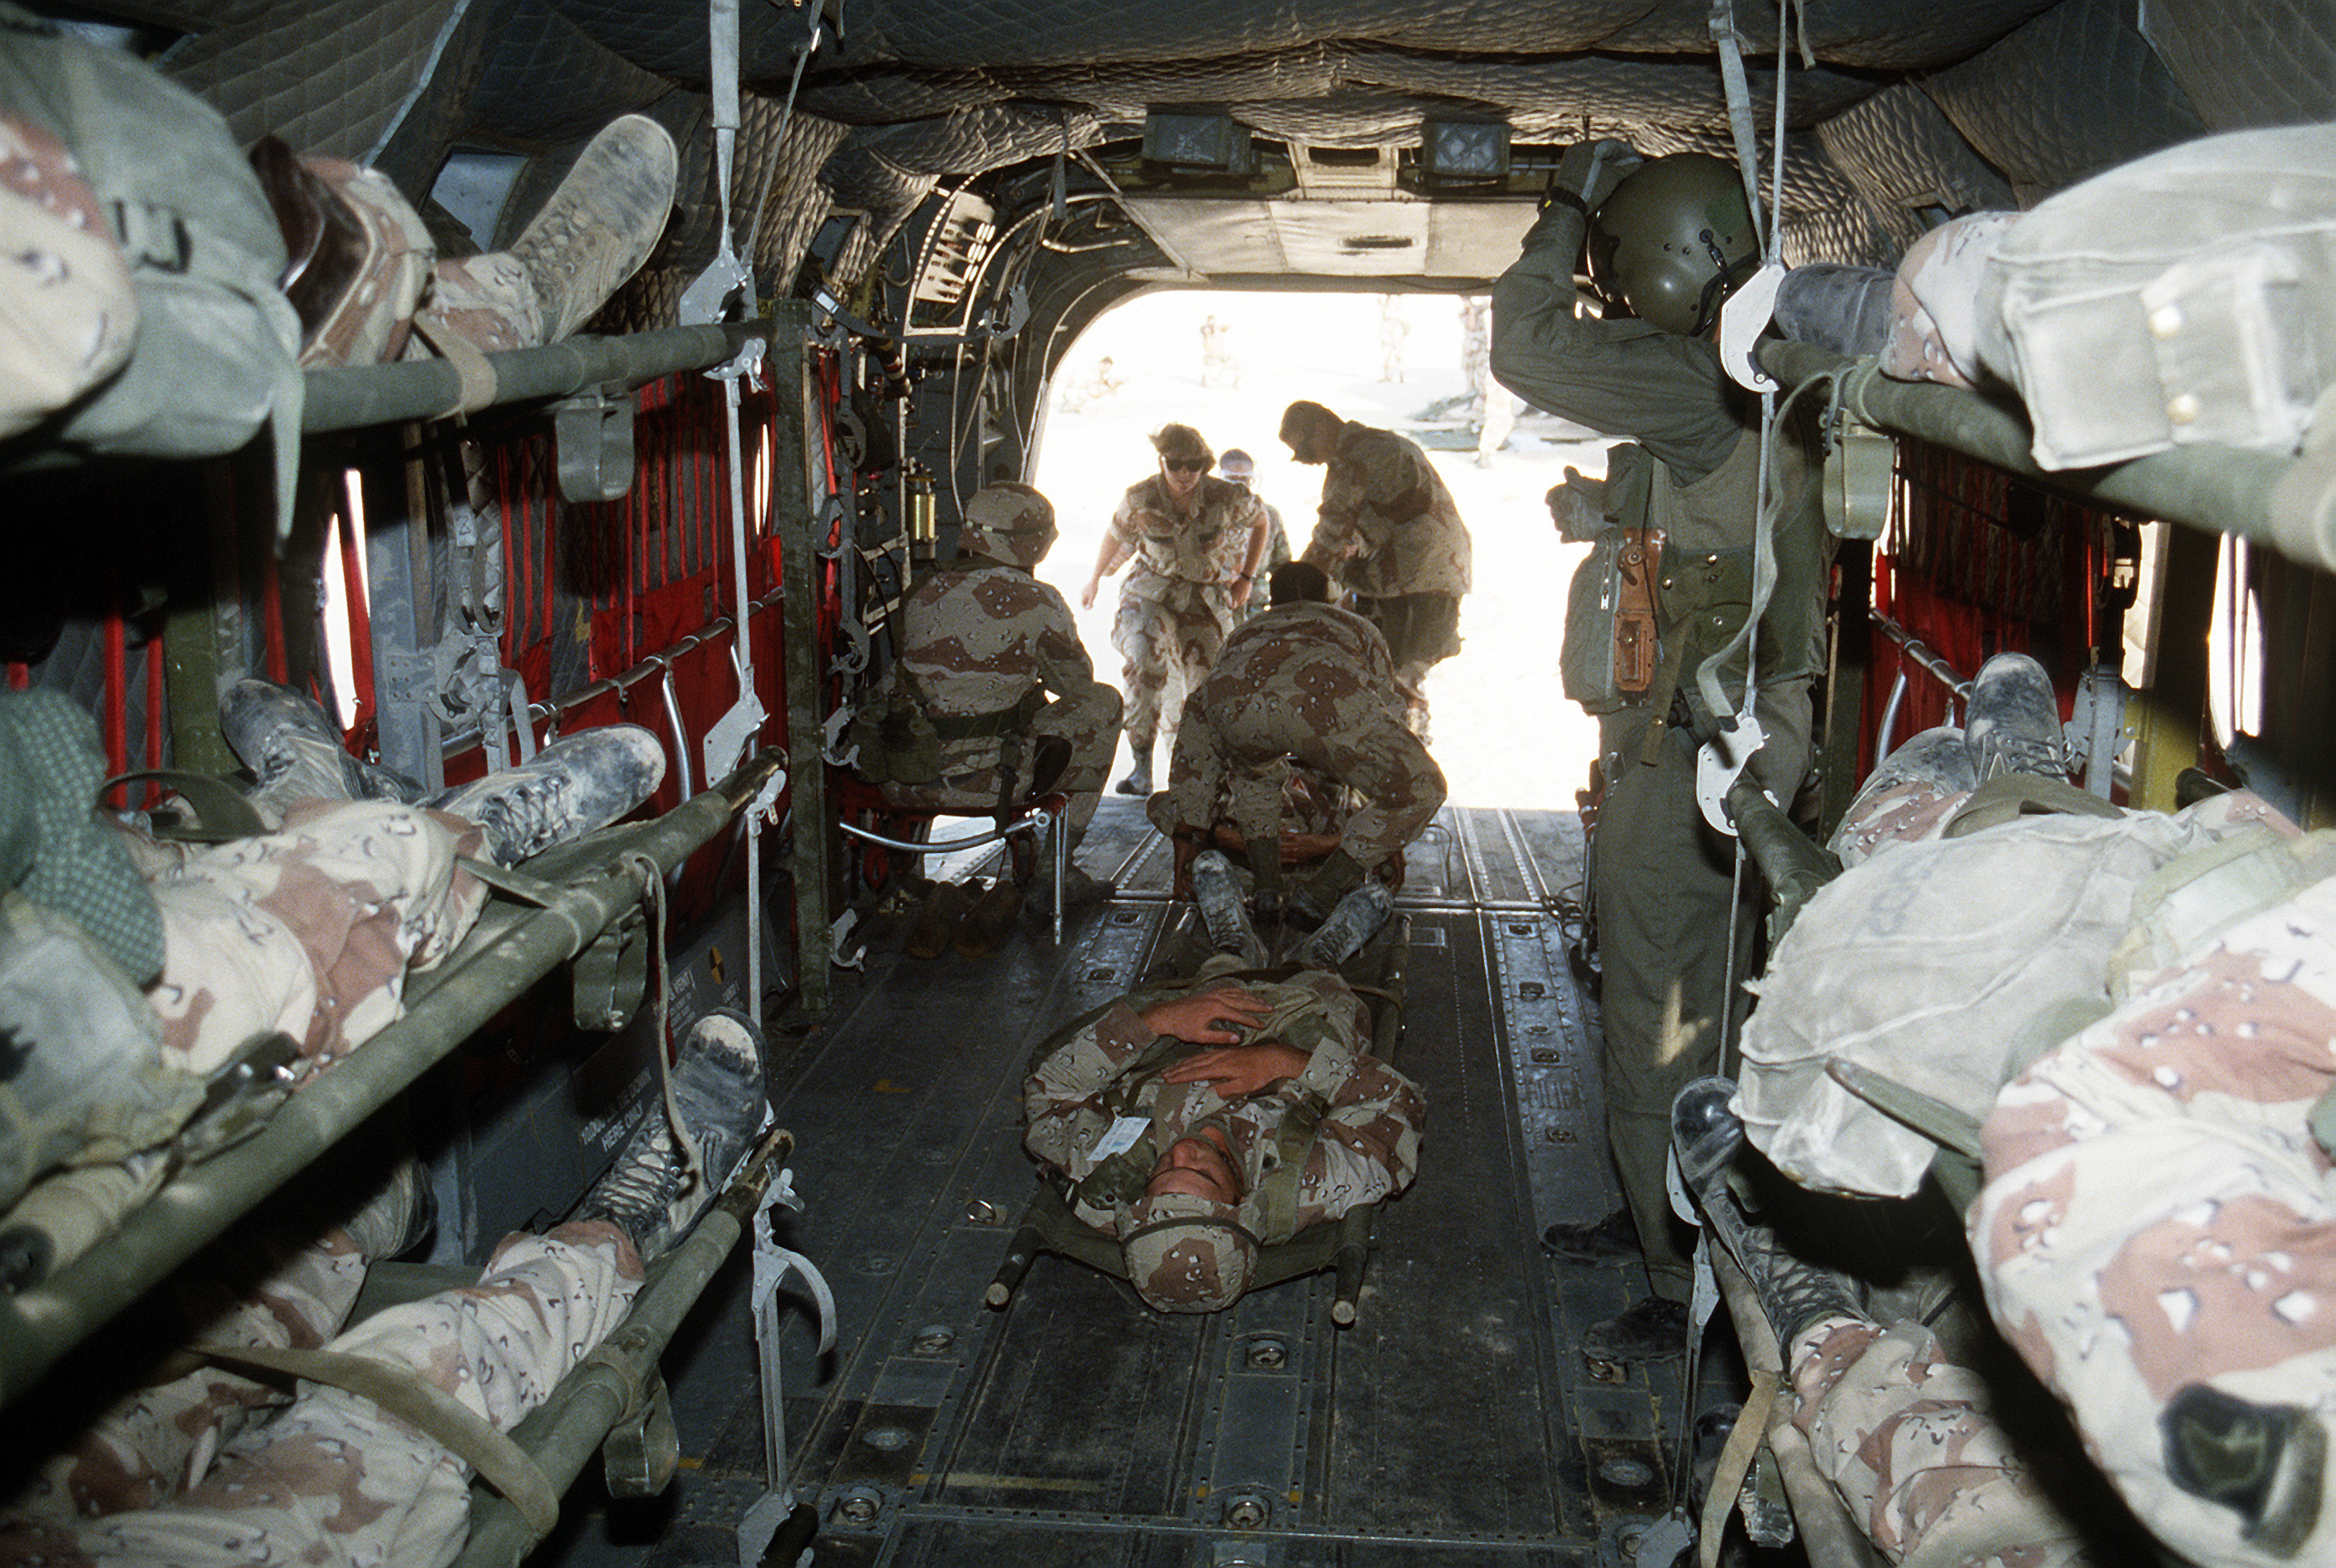 Simulated casualties are placed on a C-130 Hercules aircraft after receiving medical care at treatment tents as part of a mock casualty exercise taking place during Operation Desert Shield